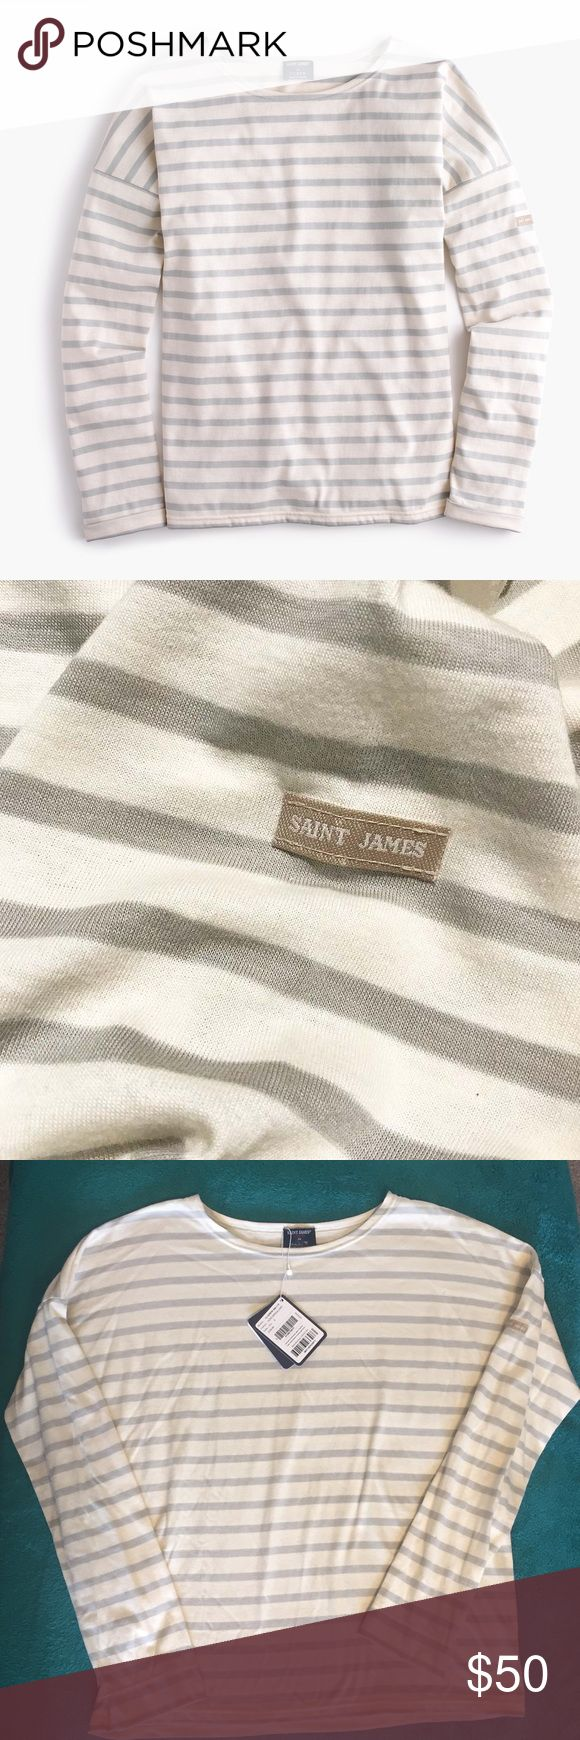 """Saint James® for J.Crew slouchy T-shirt NWT/ SIZE & FIT Loose fit. Body length: 23 3/4"""".  PRODUCT DETAILS Saint James has been spinning some of the world's finest knits out of its Normandy-based factory since 1889 and has become famous for its Breton shirt, a nautical-inspired style featuring classic stripes. Designed exclusively for us, this airy cotton version features a roomy body and slimmer sleeves.   Cotton. Machine wash. Made in France. Item A1931. J. Crew Tops Tees - Long Sleeve"""